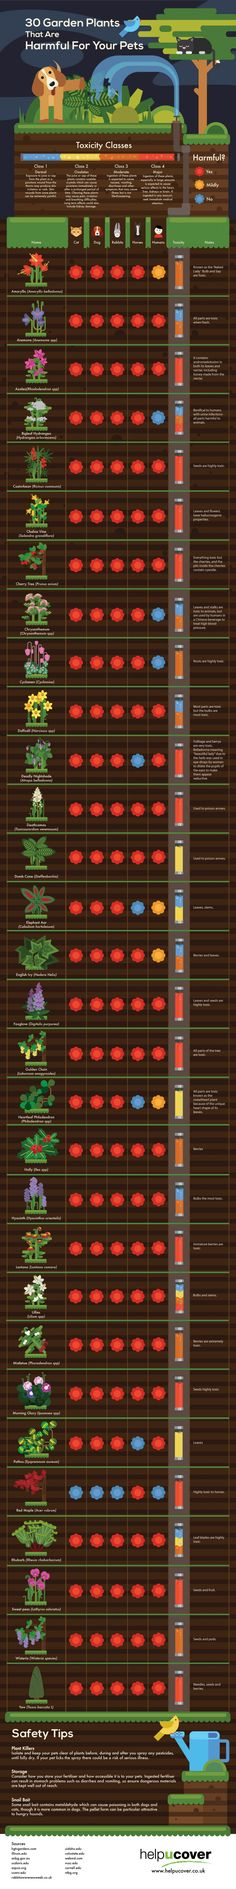 30 Garden Plants That Are Harmful For Your Pets